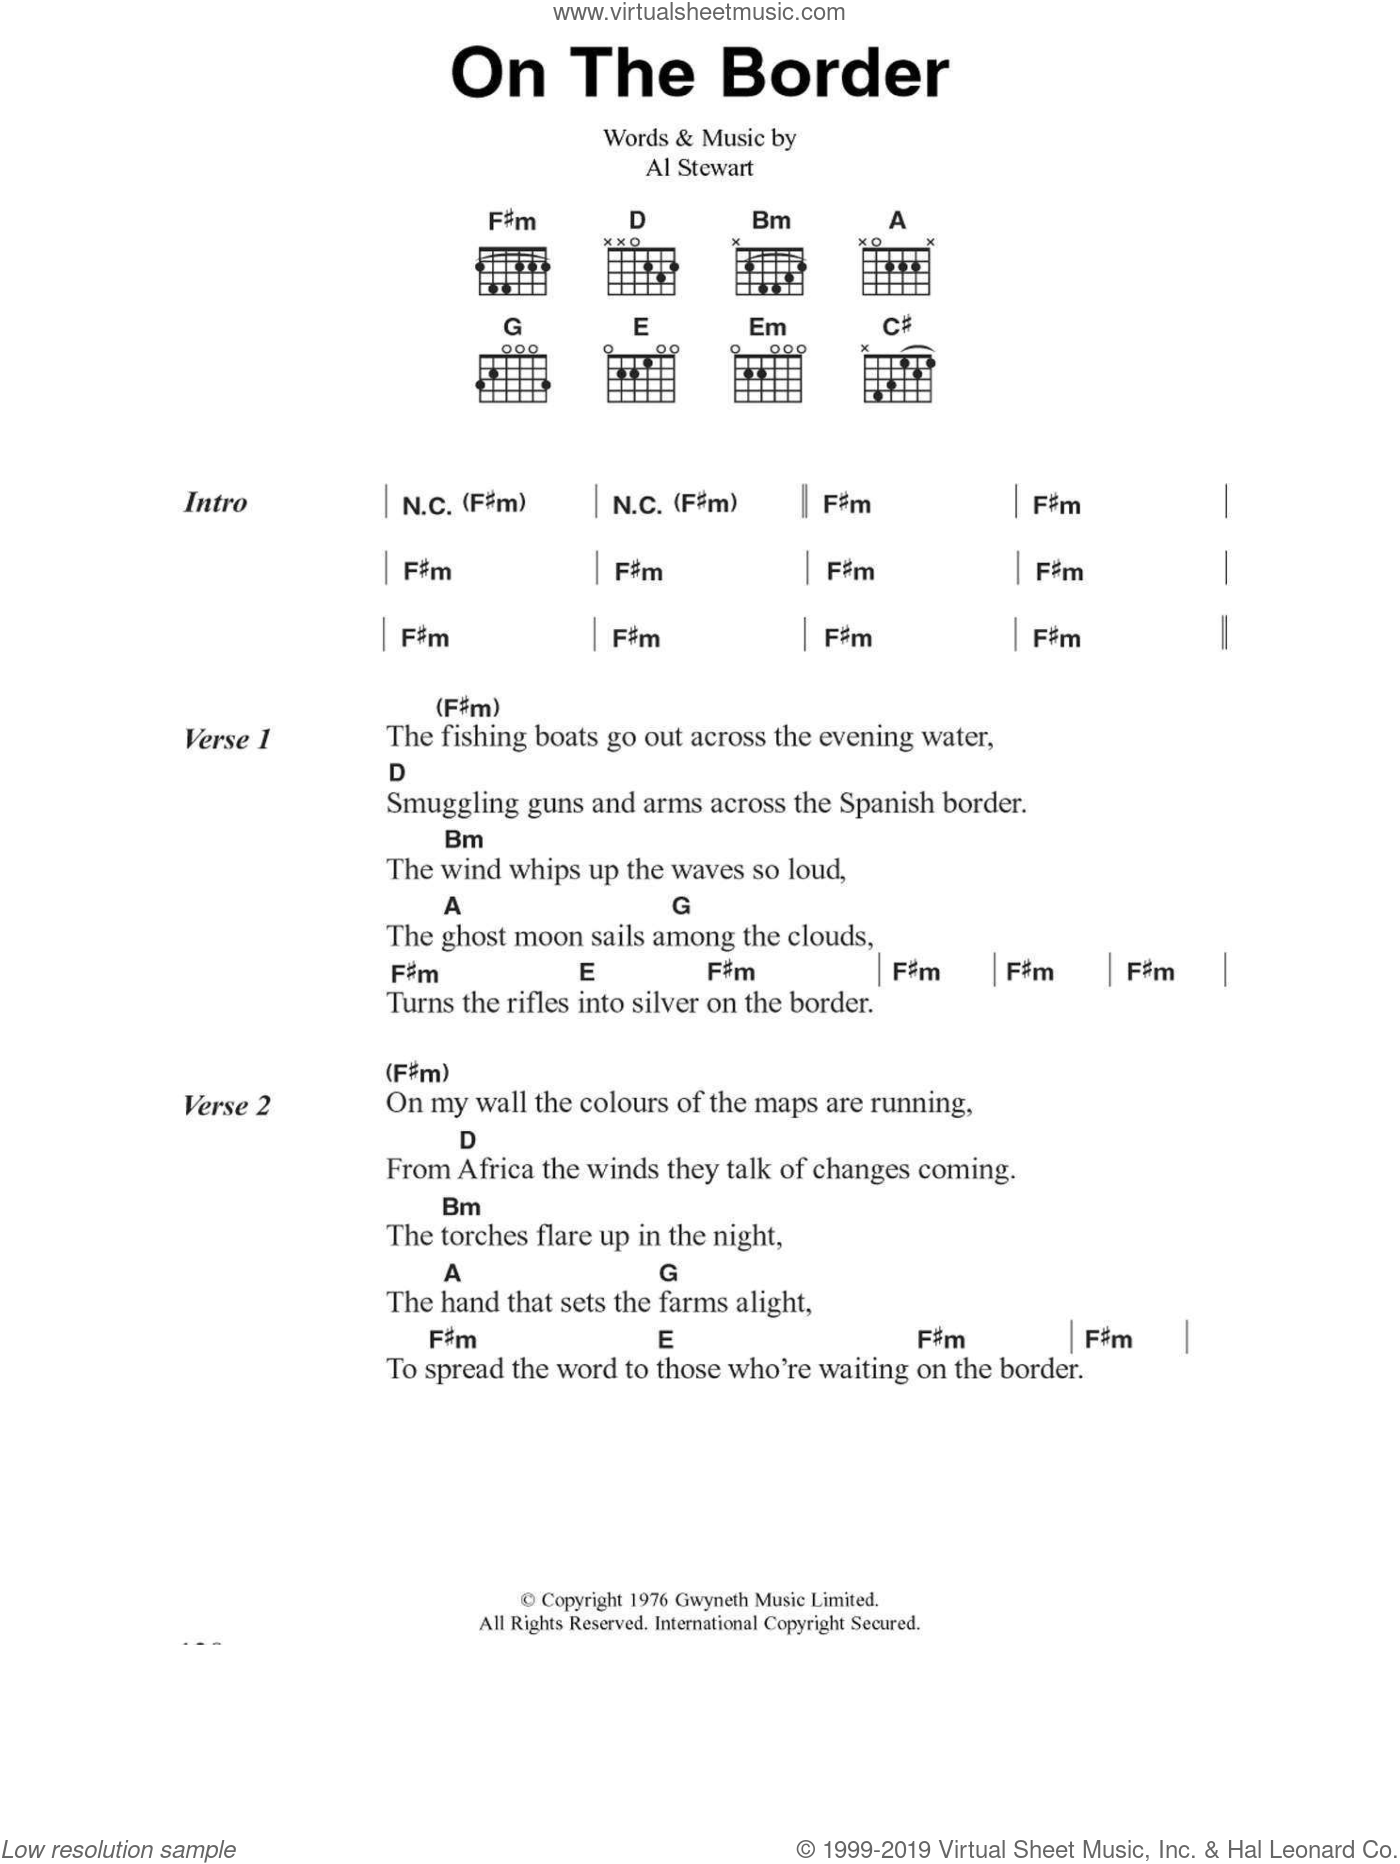 Stewart - On The Border sheet music for guitar (chords) [PDF]